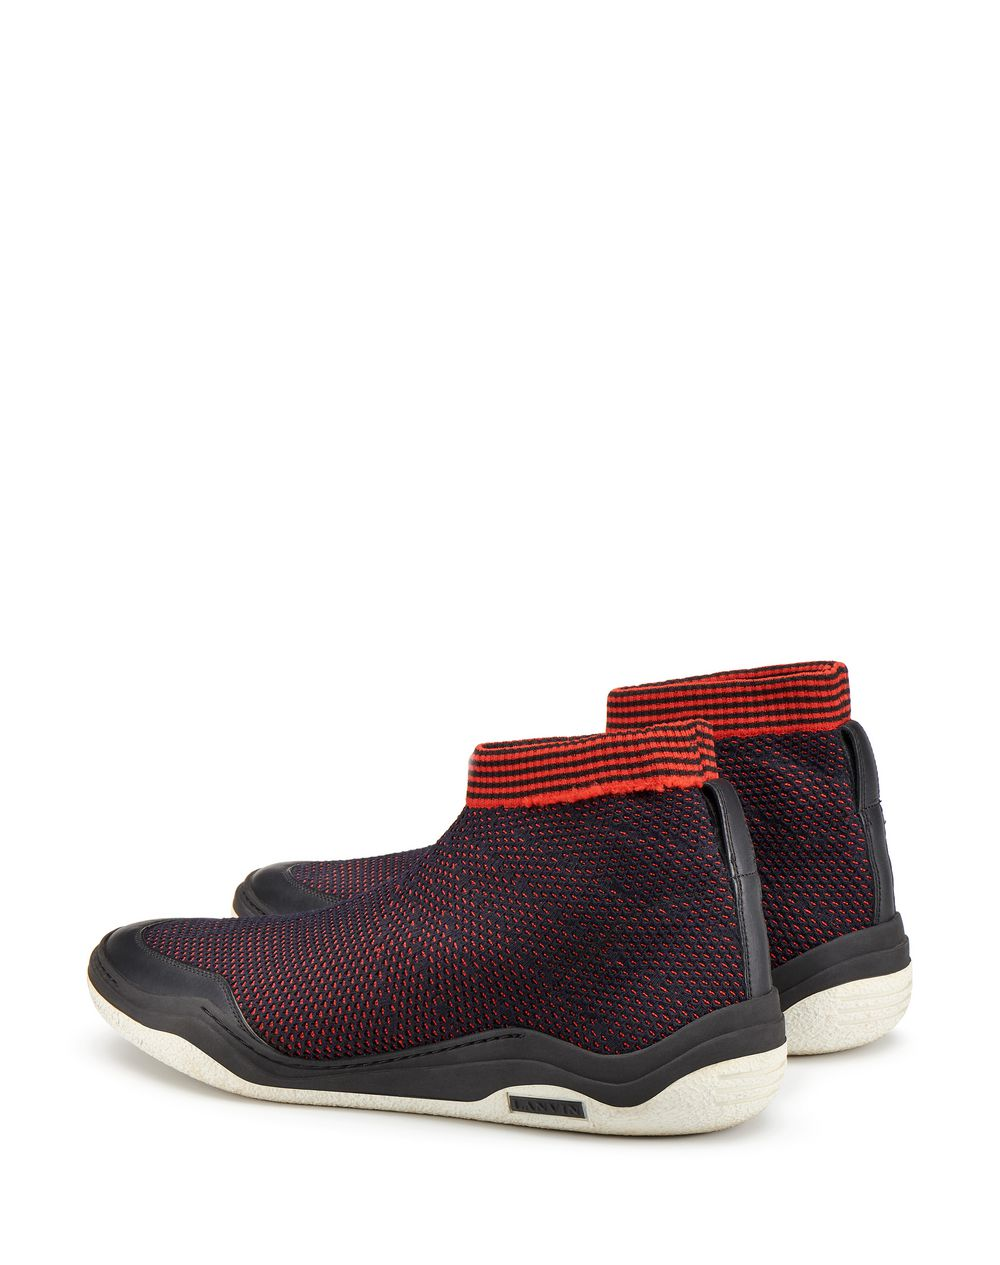 MID-TOP-SNEAKERS DIVING - Lanvin